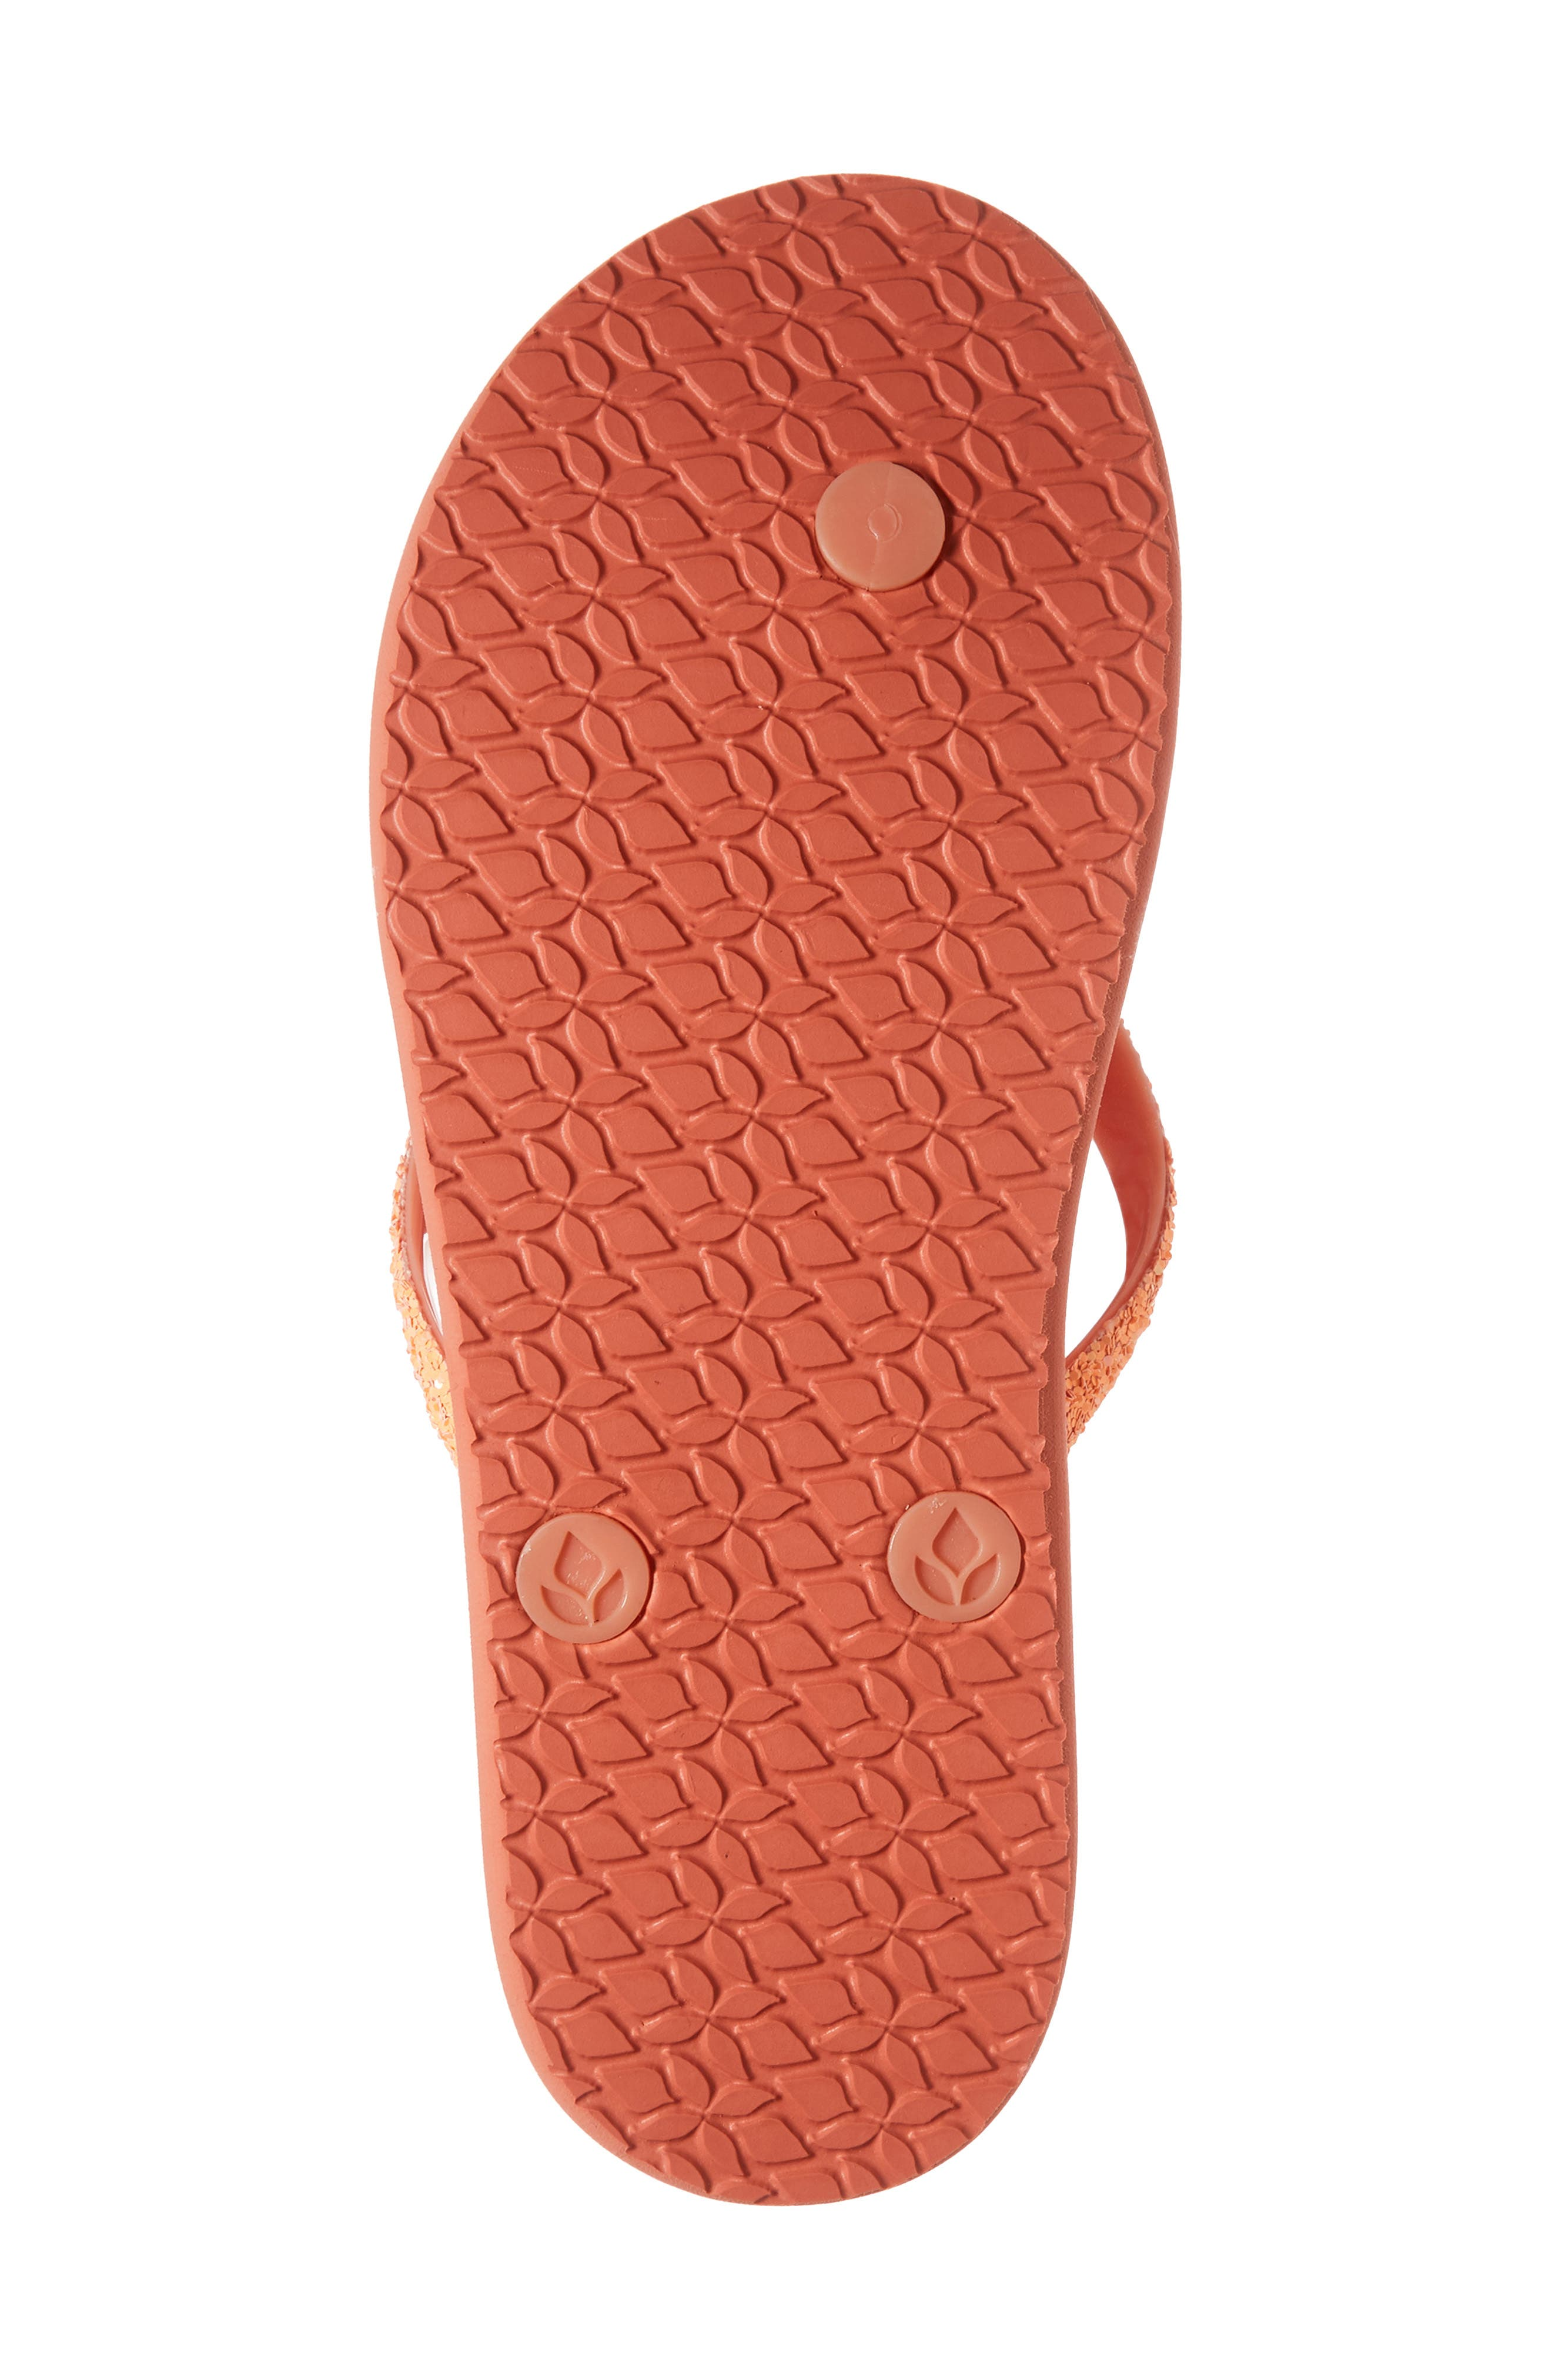 Little Stargazer Glitter Sandal,                             Alternate thumbnail 6, color,                             Orange